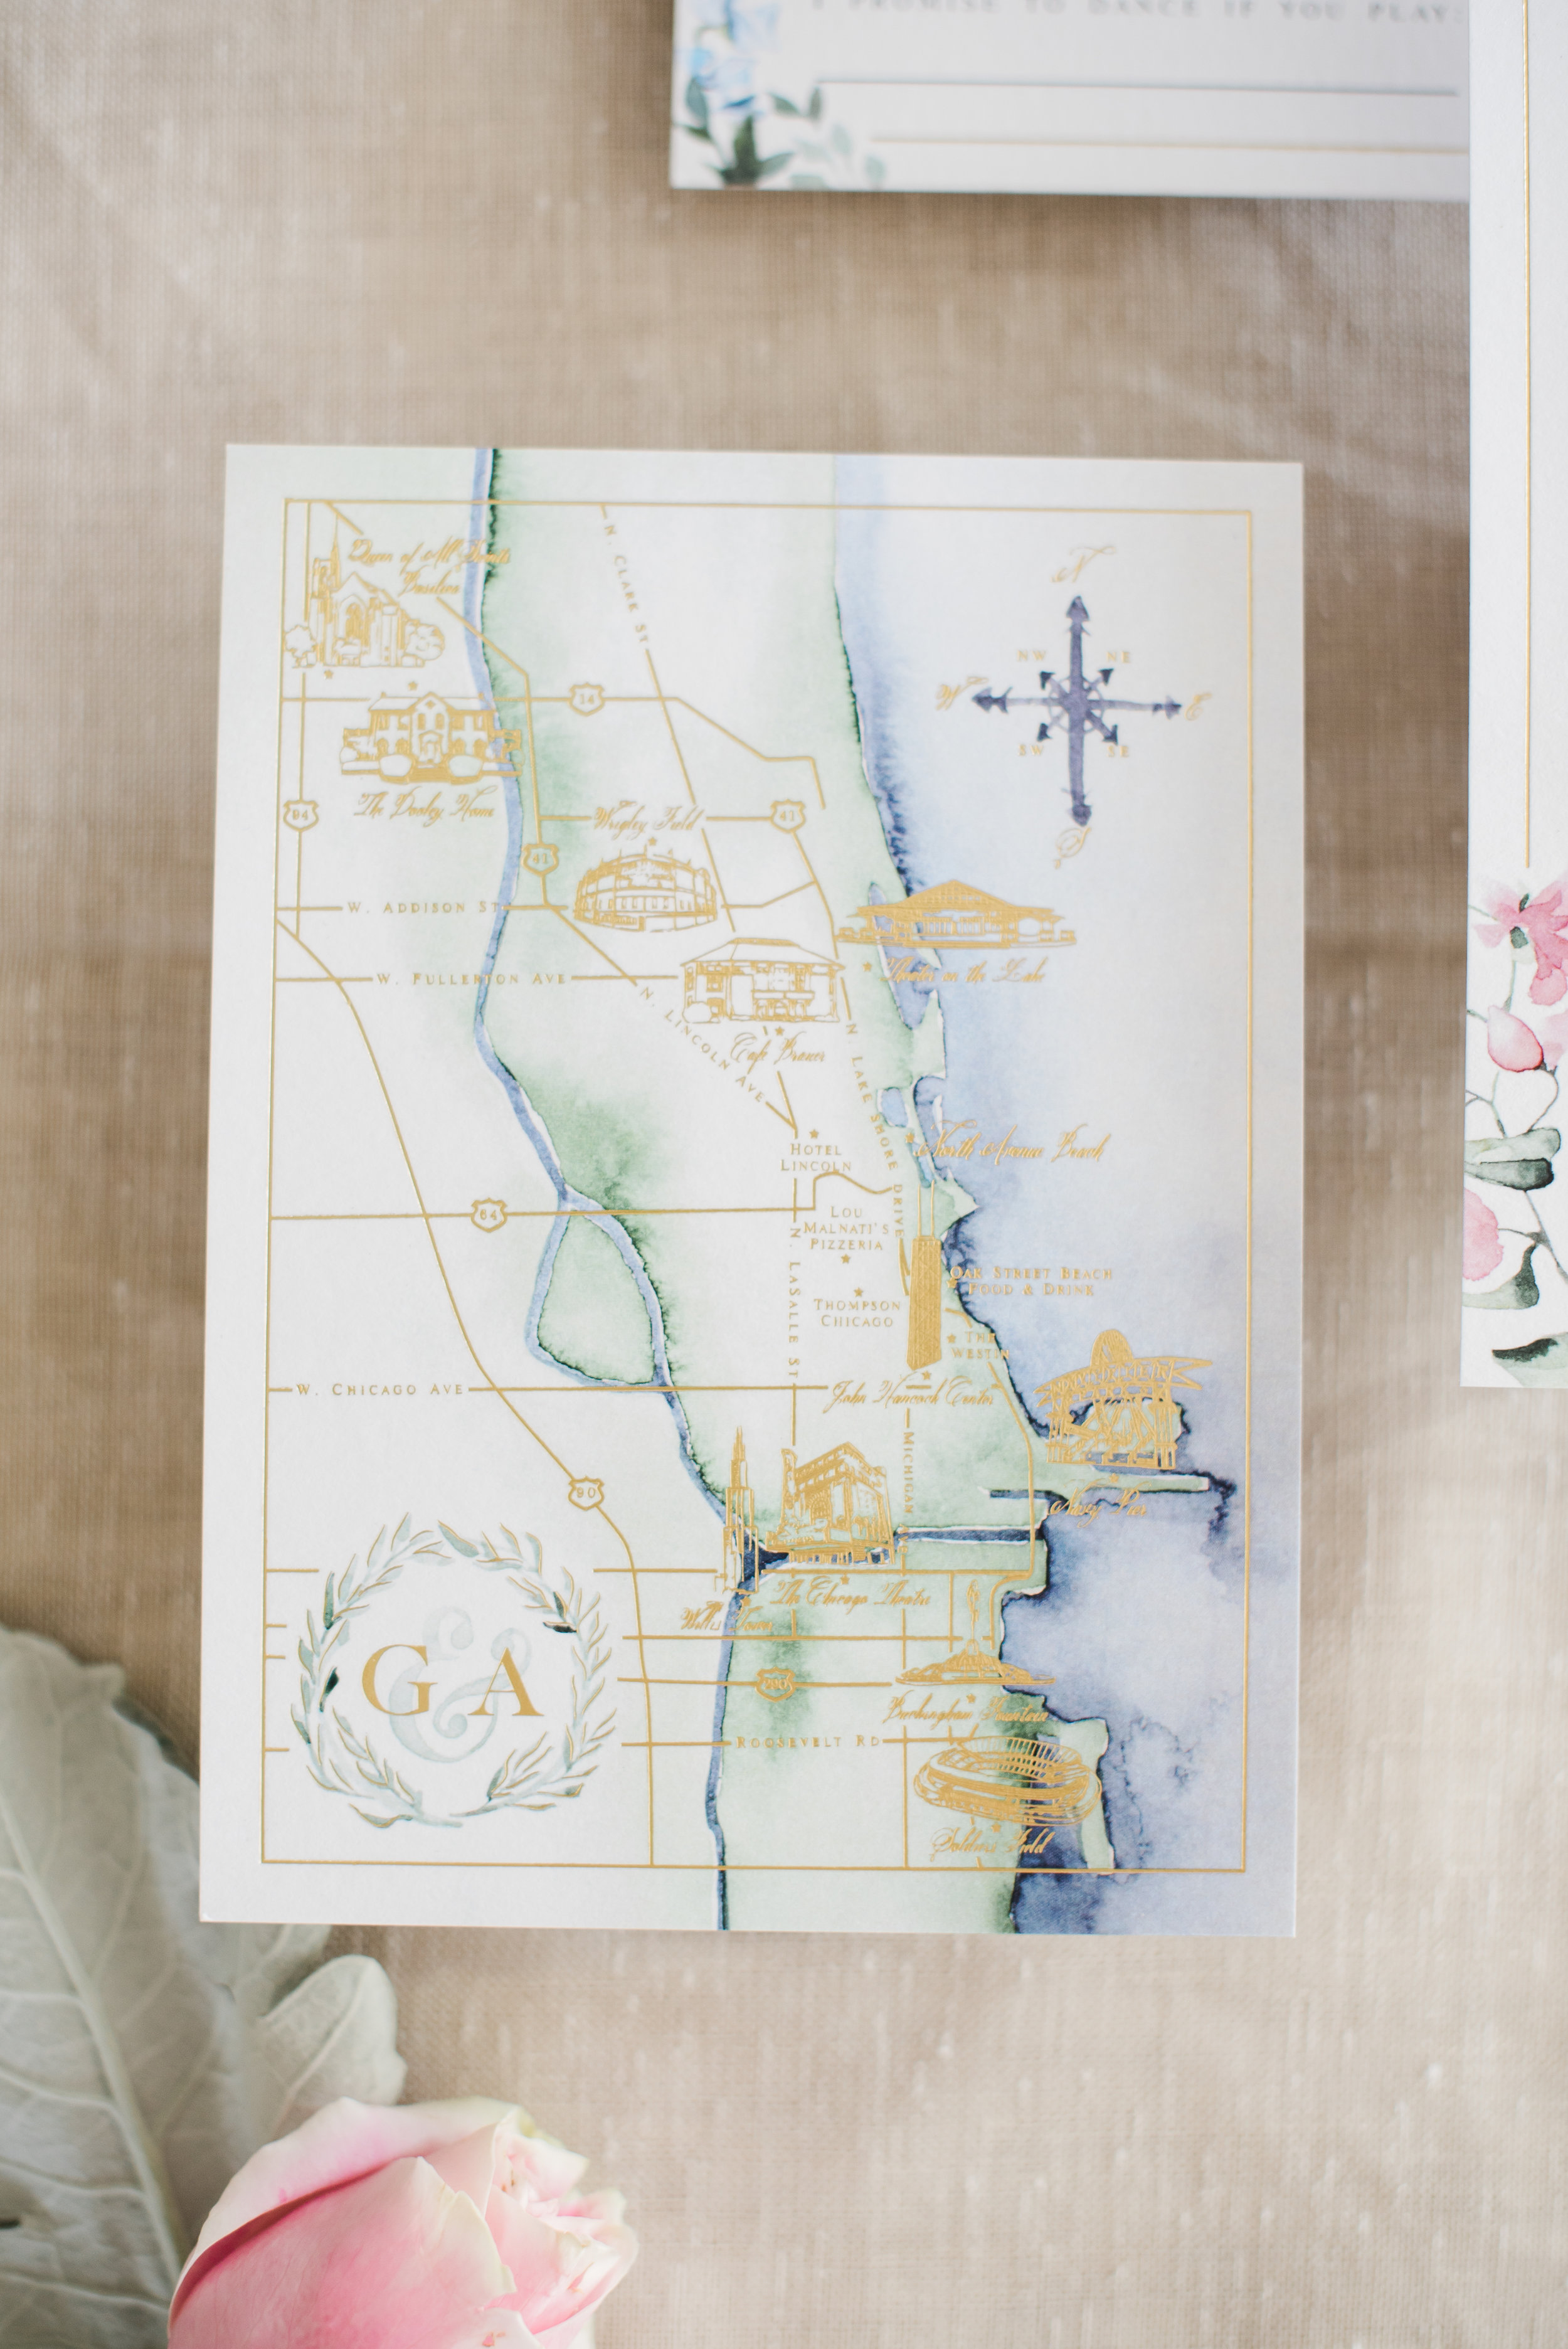 Chicago Watercolor + Gold Foil Wedding Map